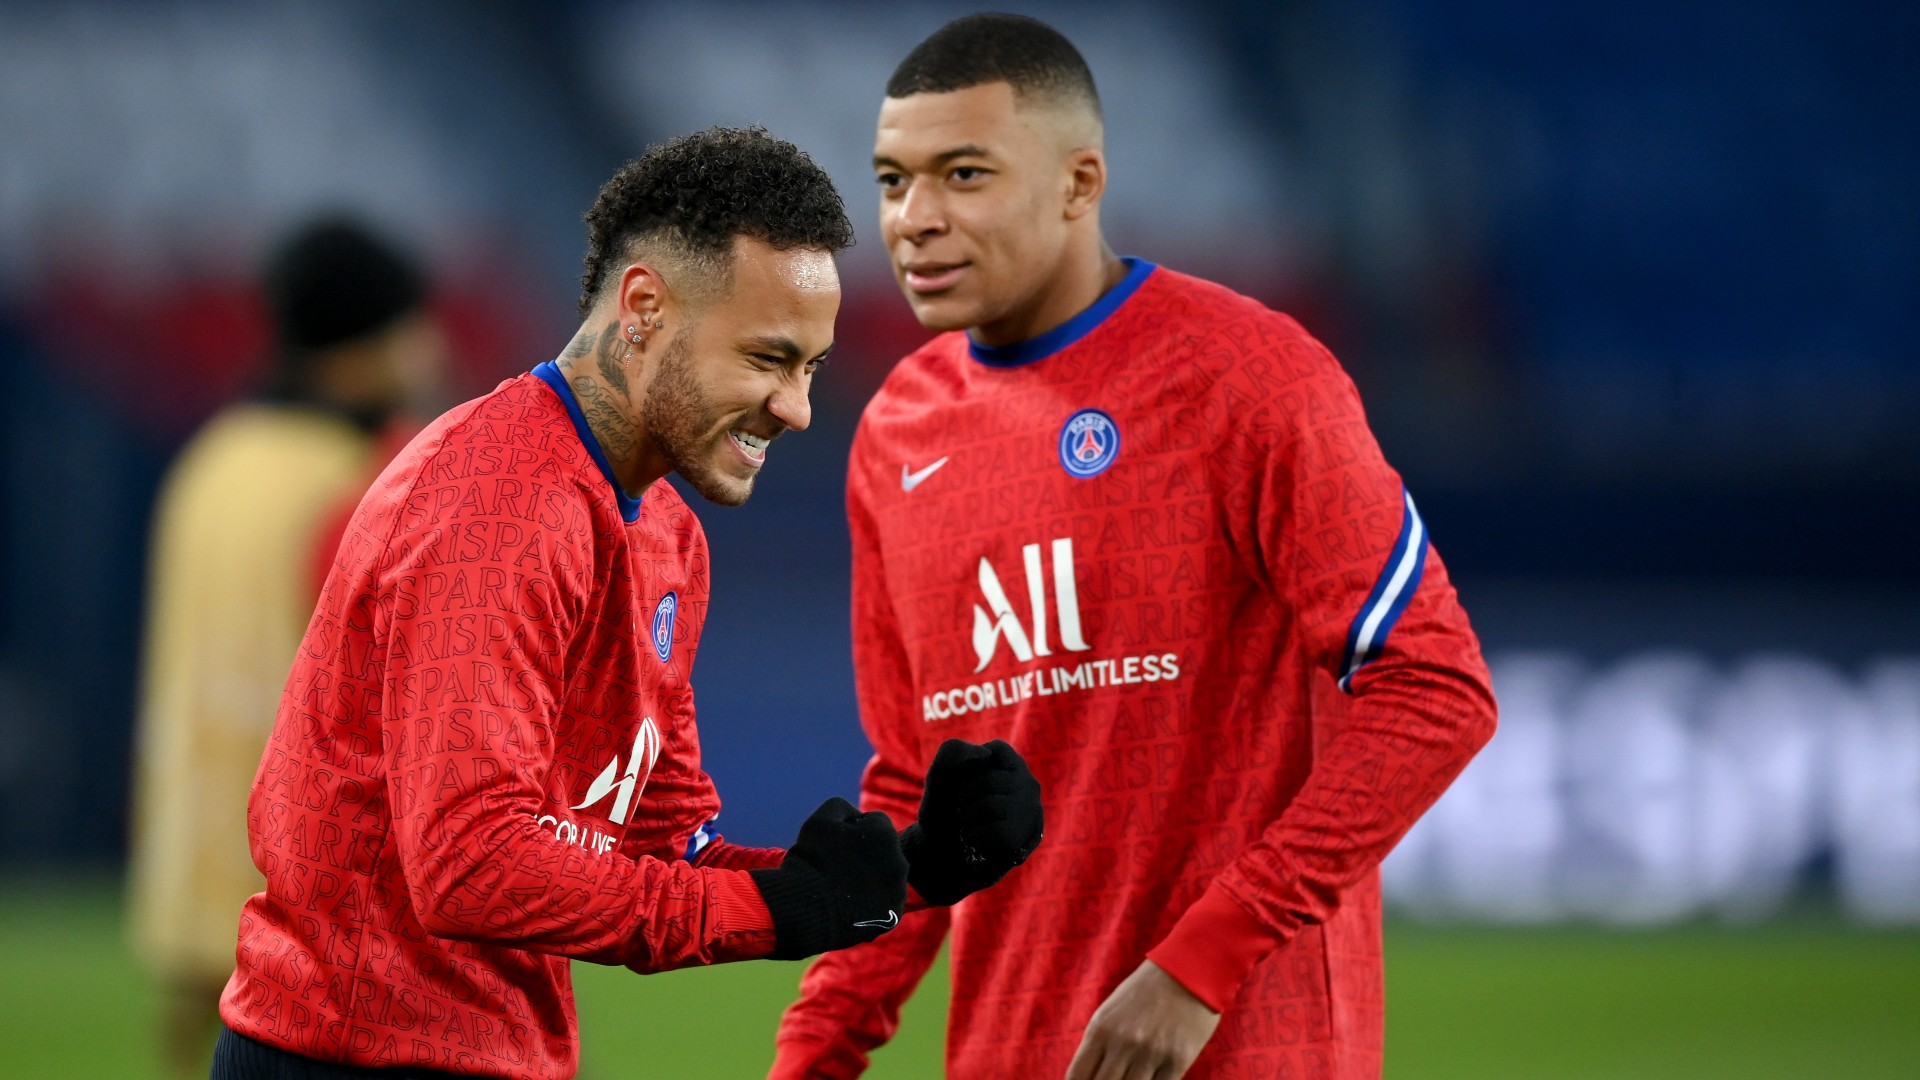 Neymar and Mbappe have no excuses to leave PSG as Champions League semis beckon, insists Al-Khelaifi